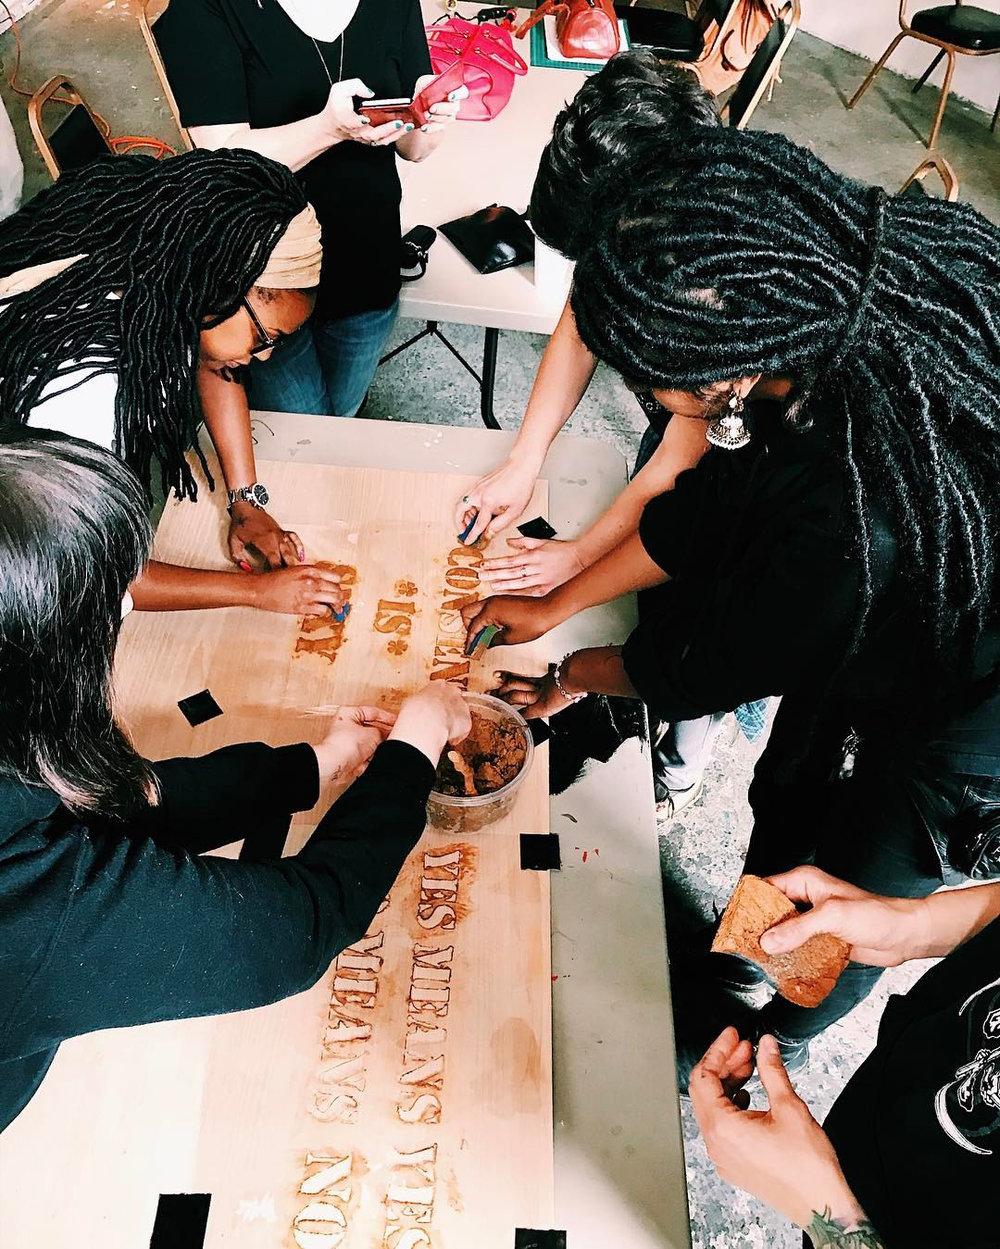 - Today on the V Word, local artist/activist, Malena Magnolia is featured from her workshop: LEARN HOW TO MUD STENCIL WITH MALENA MAGNOLIA AND CREATE STENCILS COMBATTING SEXUAL AND/OR DOMESTIC VIOLENCE!